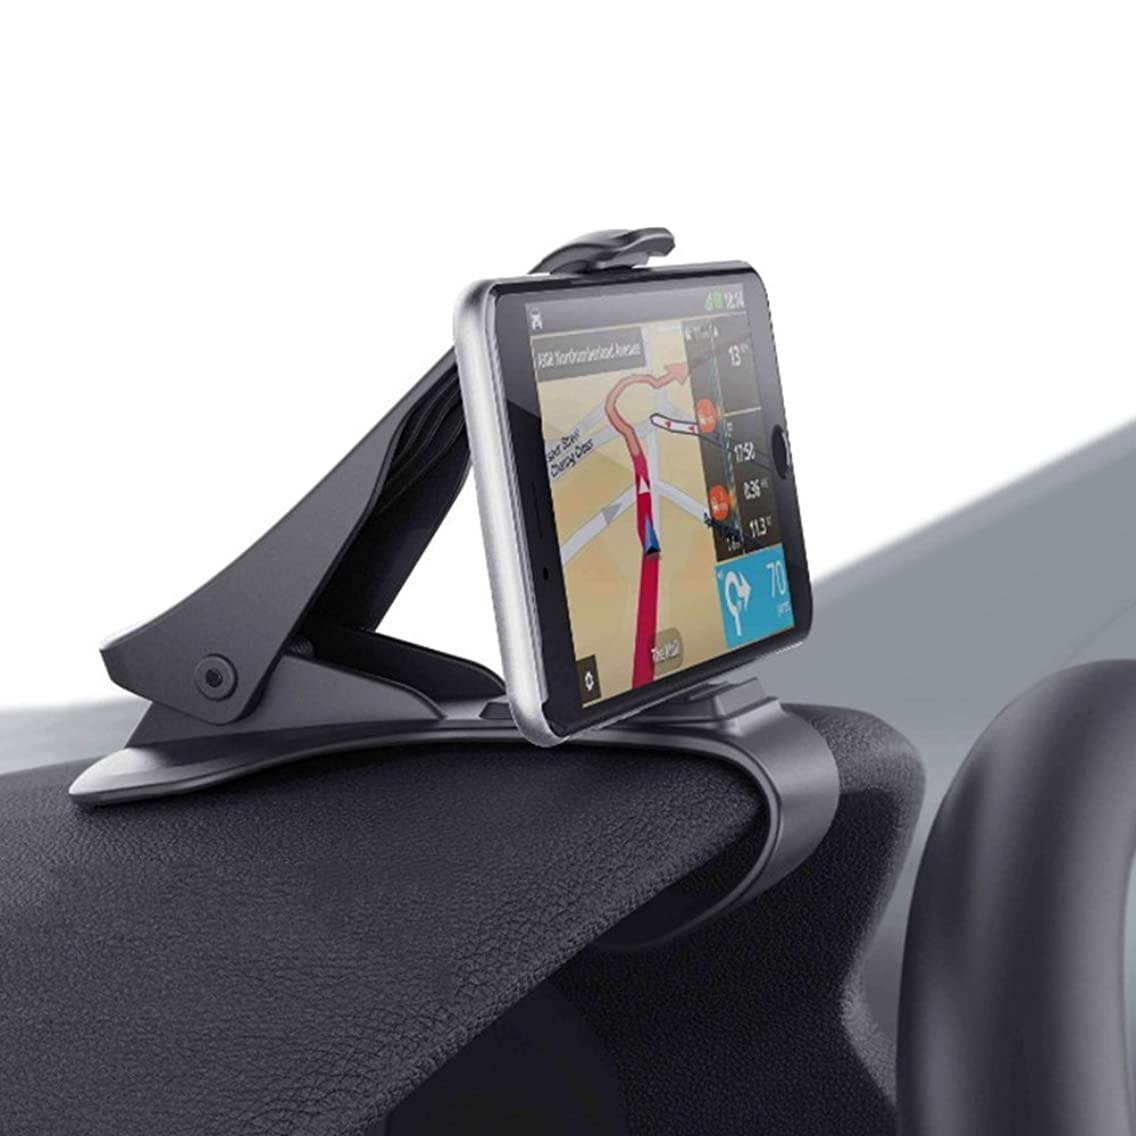 Smartphone Car Mount, HUD Simulating Atex Design Phone Crocs Jaw Dashboard Clip Holder Cradle Phone Safe Driving for i Phone X, 8, 7 Plus Samsung S10,9,8 Other Devices < 6.5'' Screen